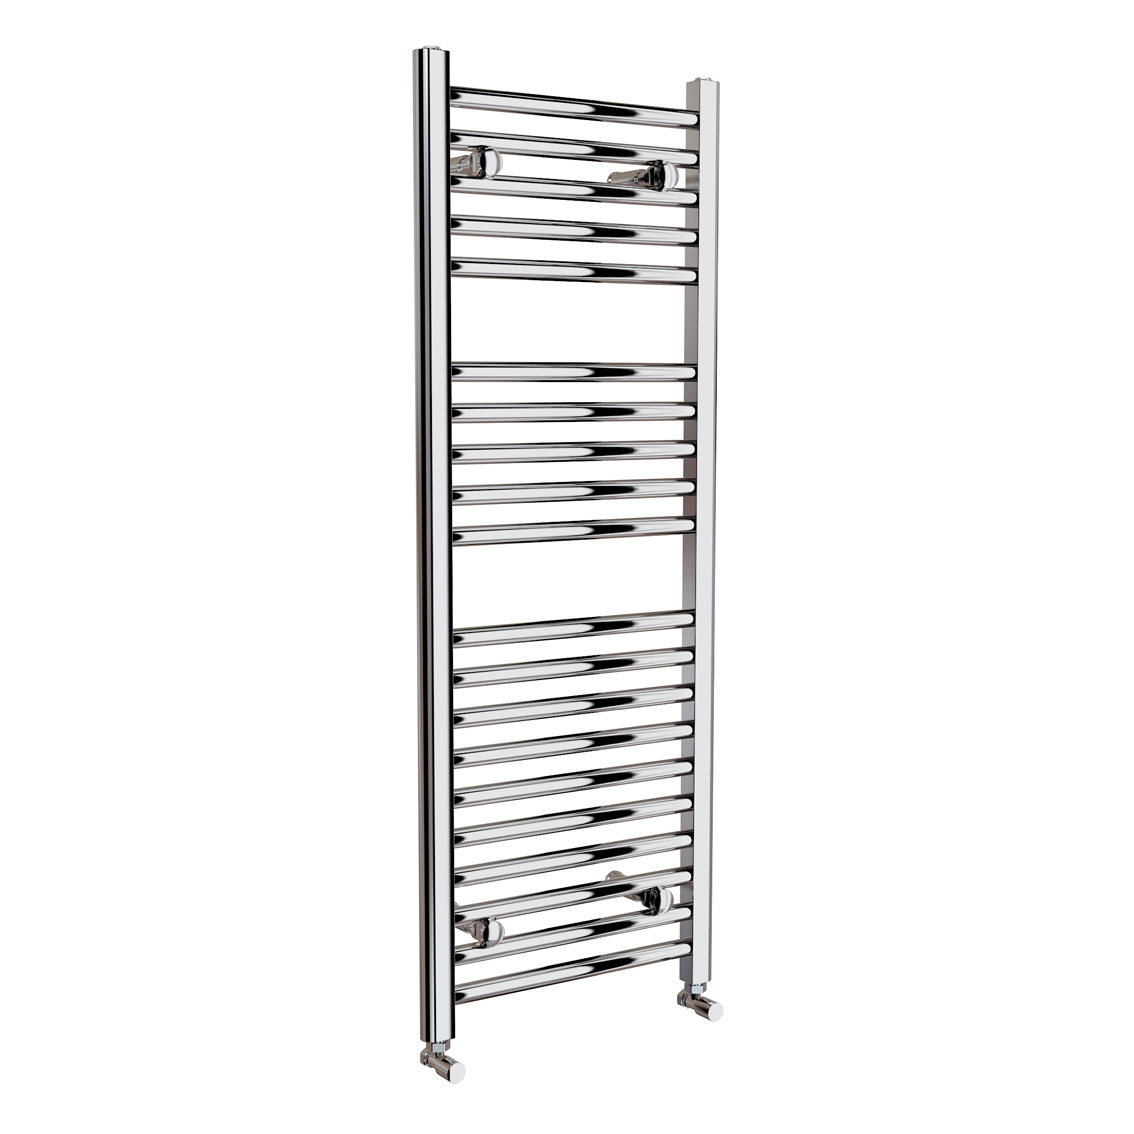 650x400mm Chrome Straight Rail Ladder Towel Radiator - Natasha